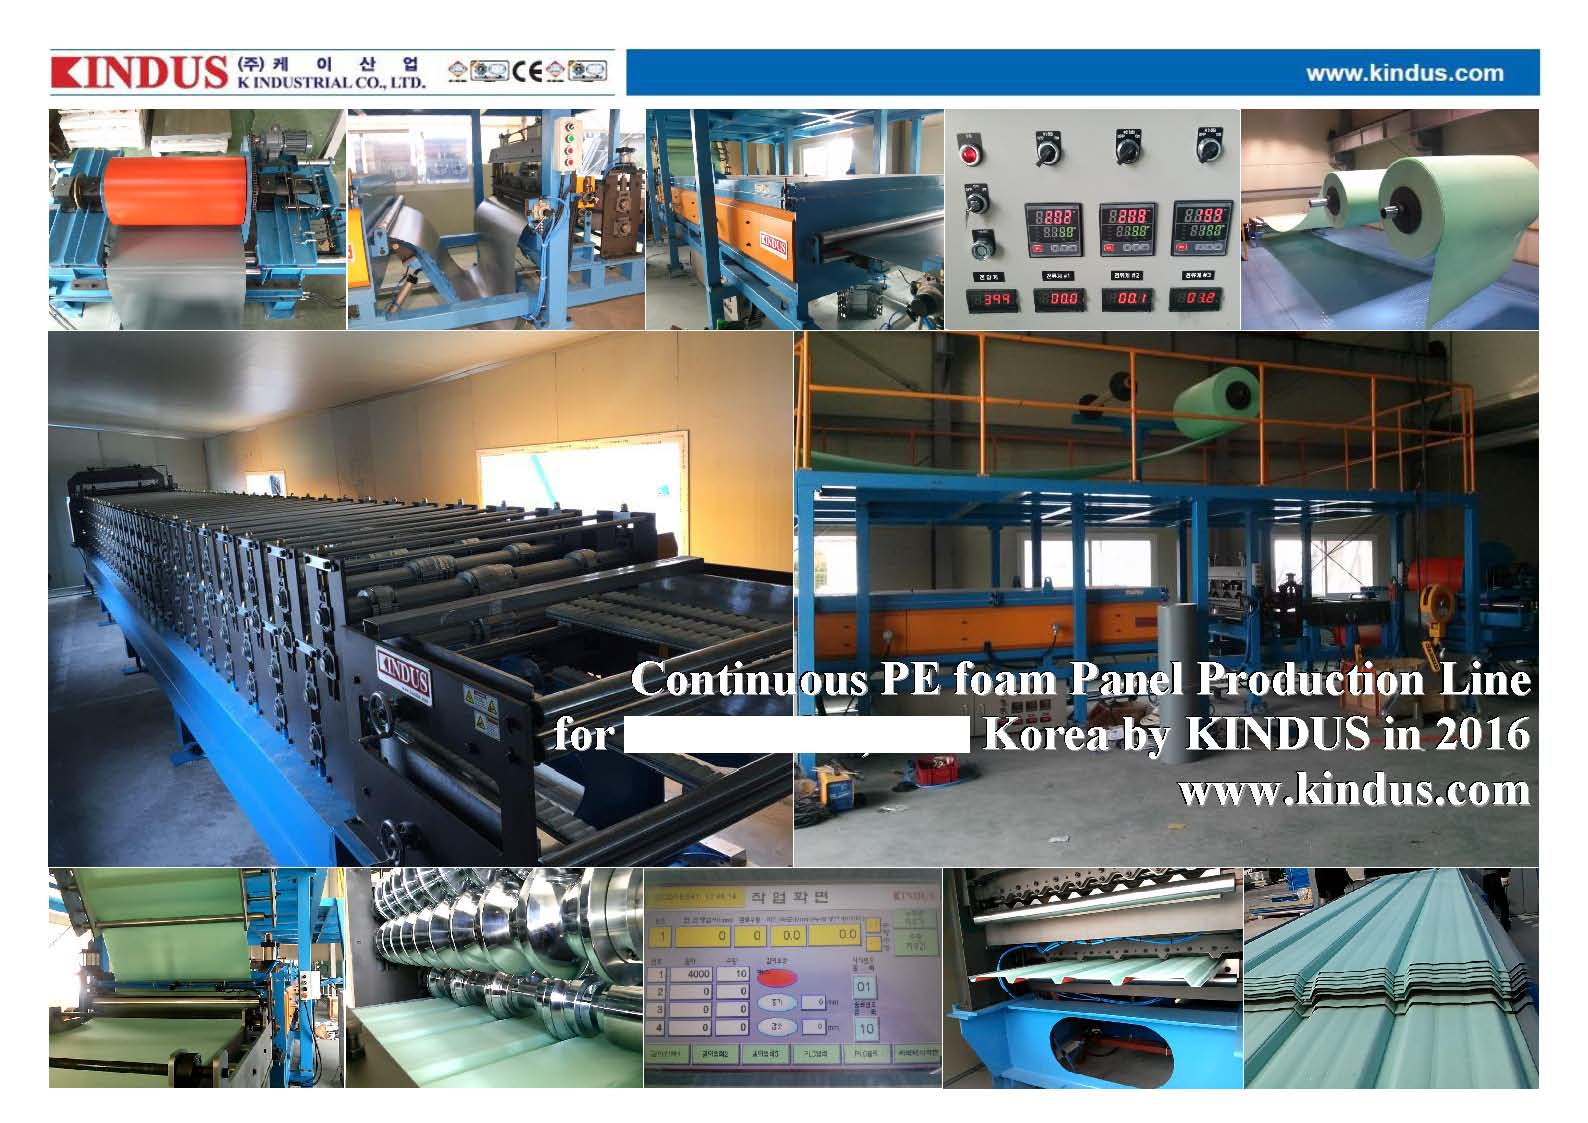 Continuous PE foam Panel Production Line